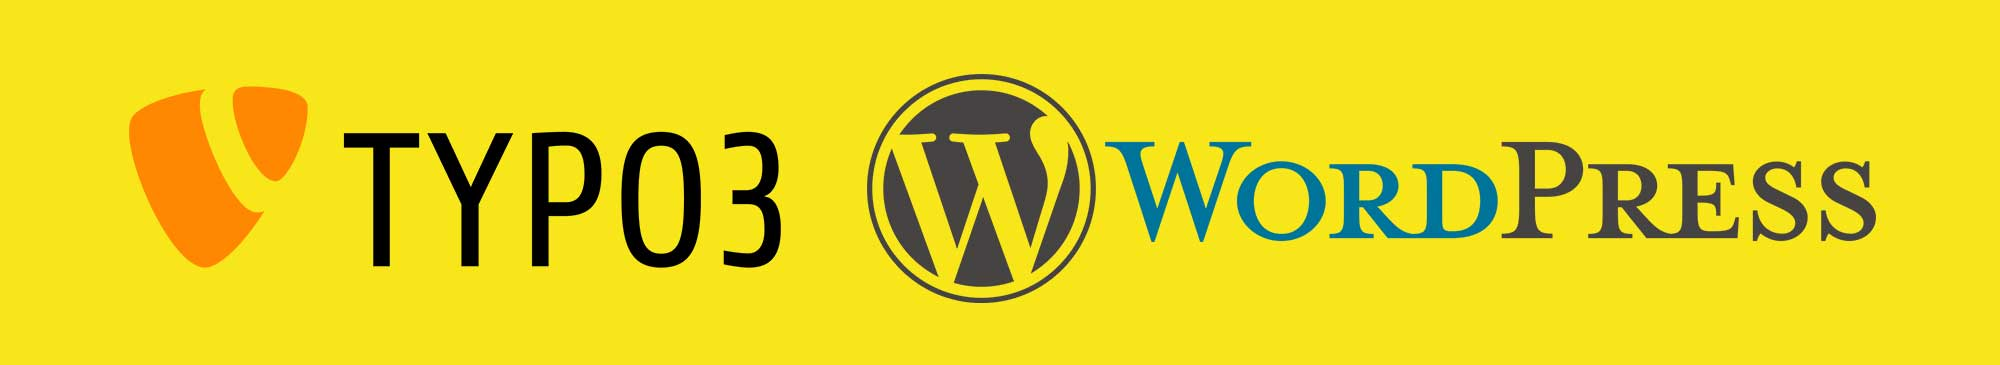 R&R/COM Websites mit CMS TYPO3 WordPress